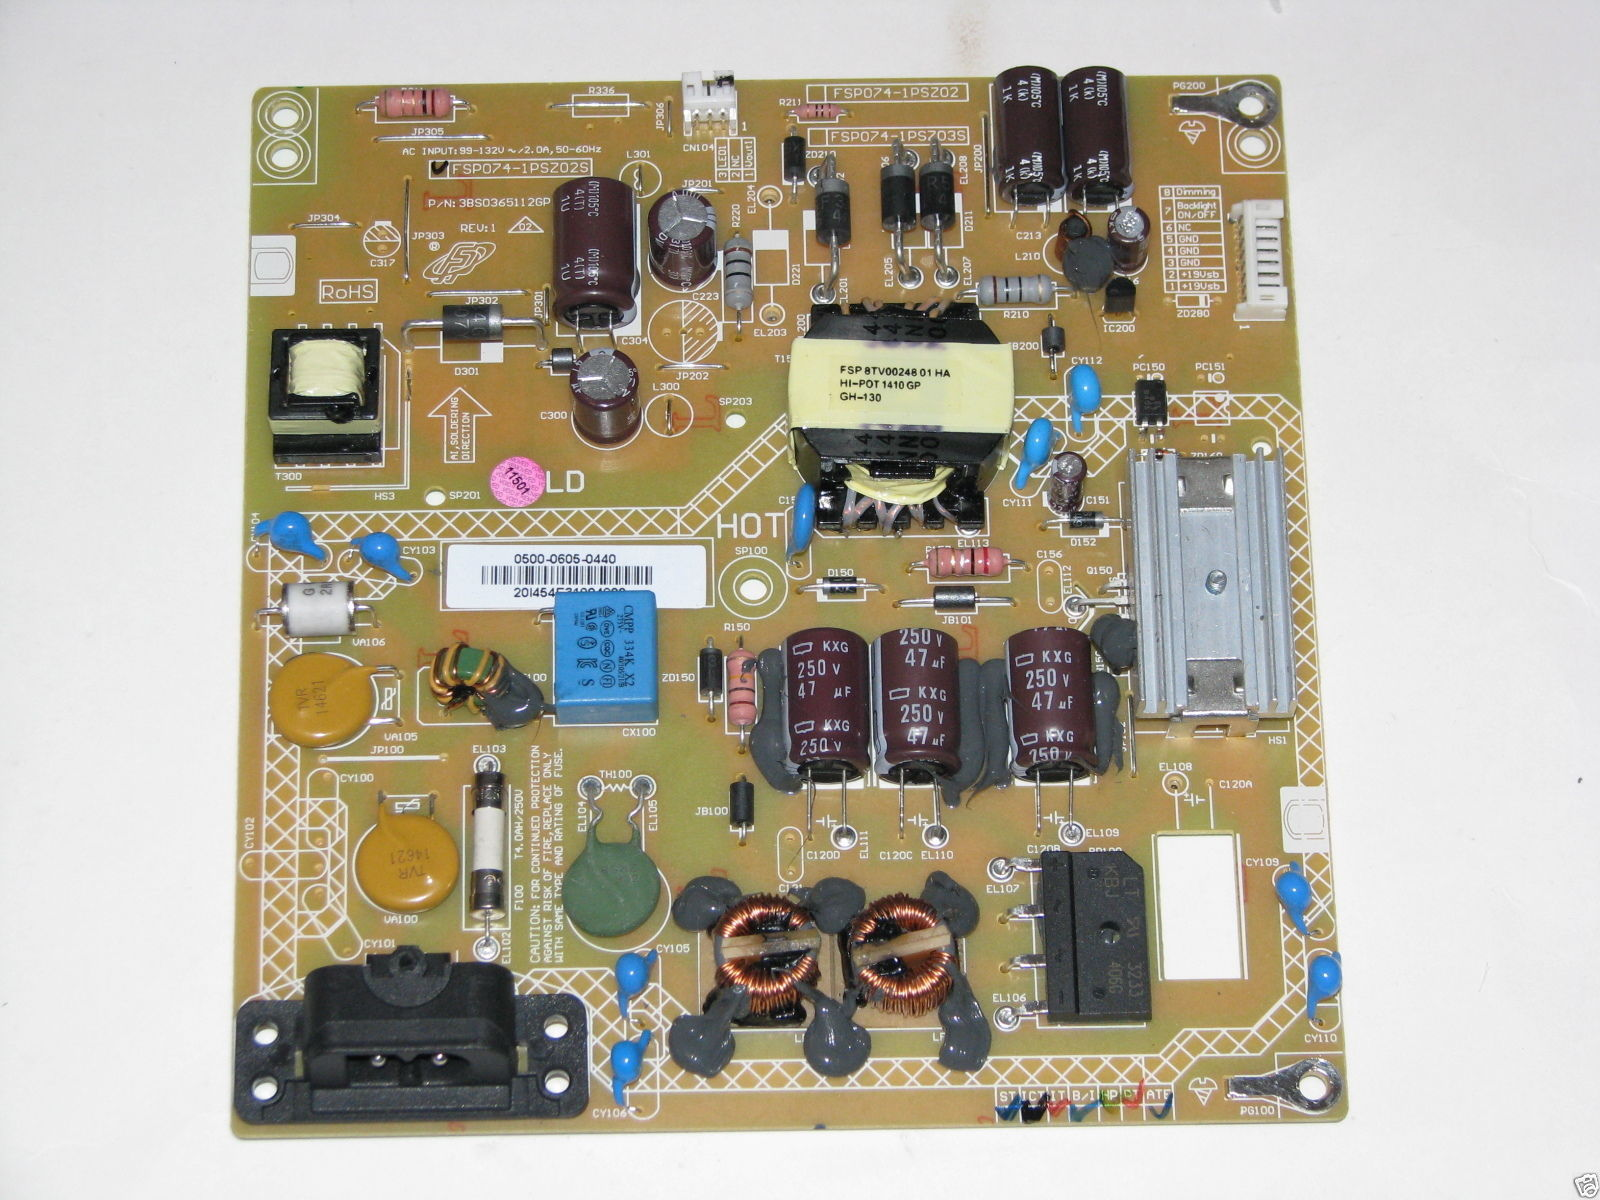 Sharp LC 32LE451U Power Supply 0500 0605 0440 9LE50006050440